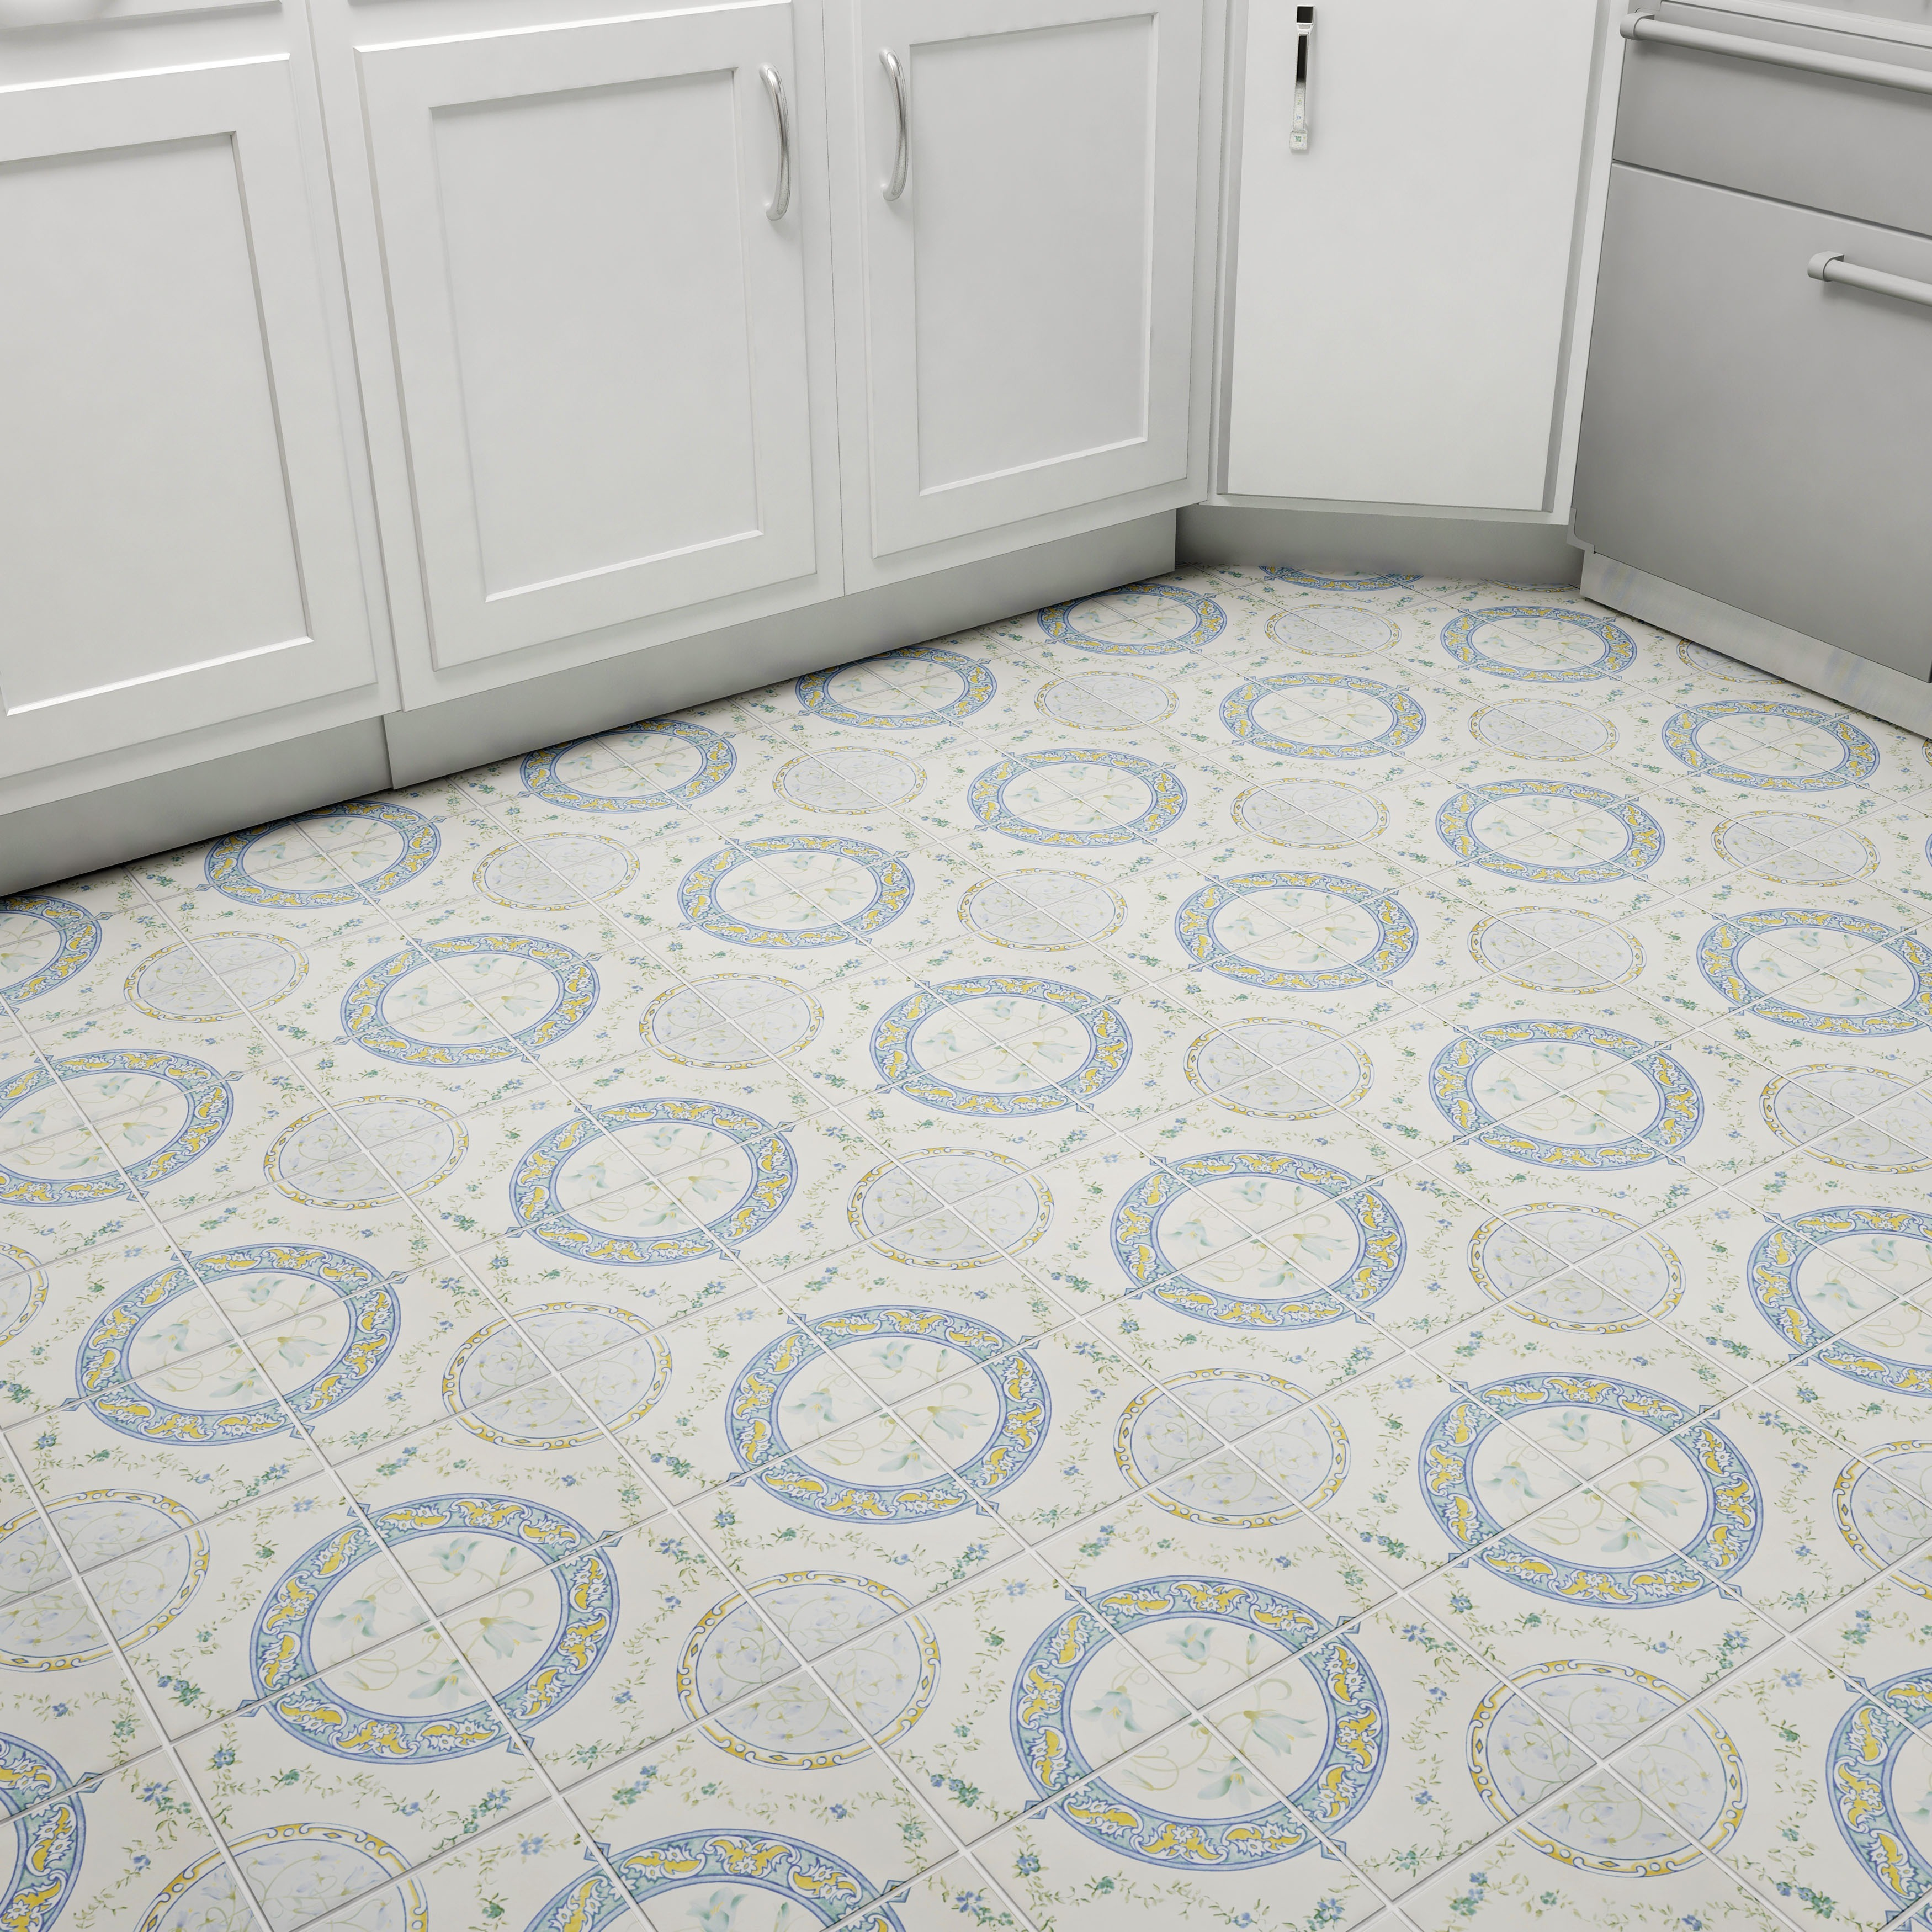 Shop SomerTile Xinch Fonthill Abbey Rian Ceramic Floor And Wall - 13x13 white ceramic floor tile